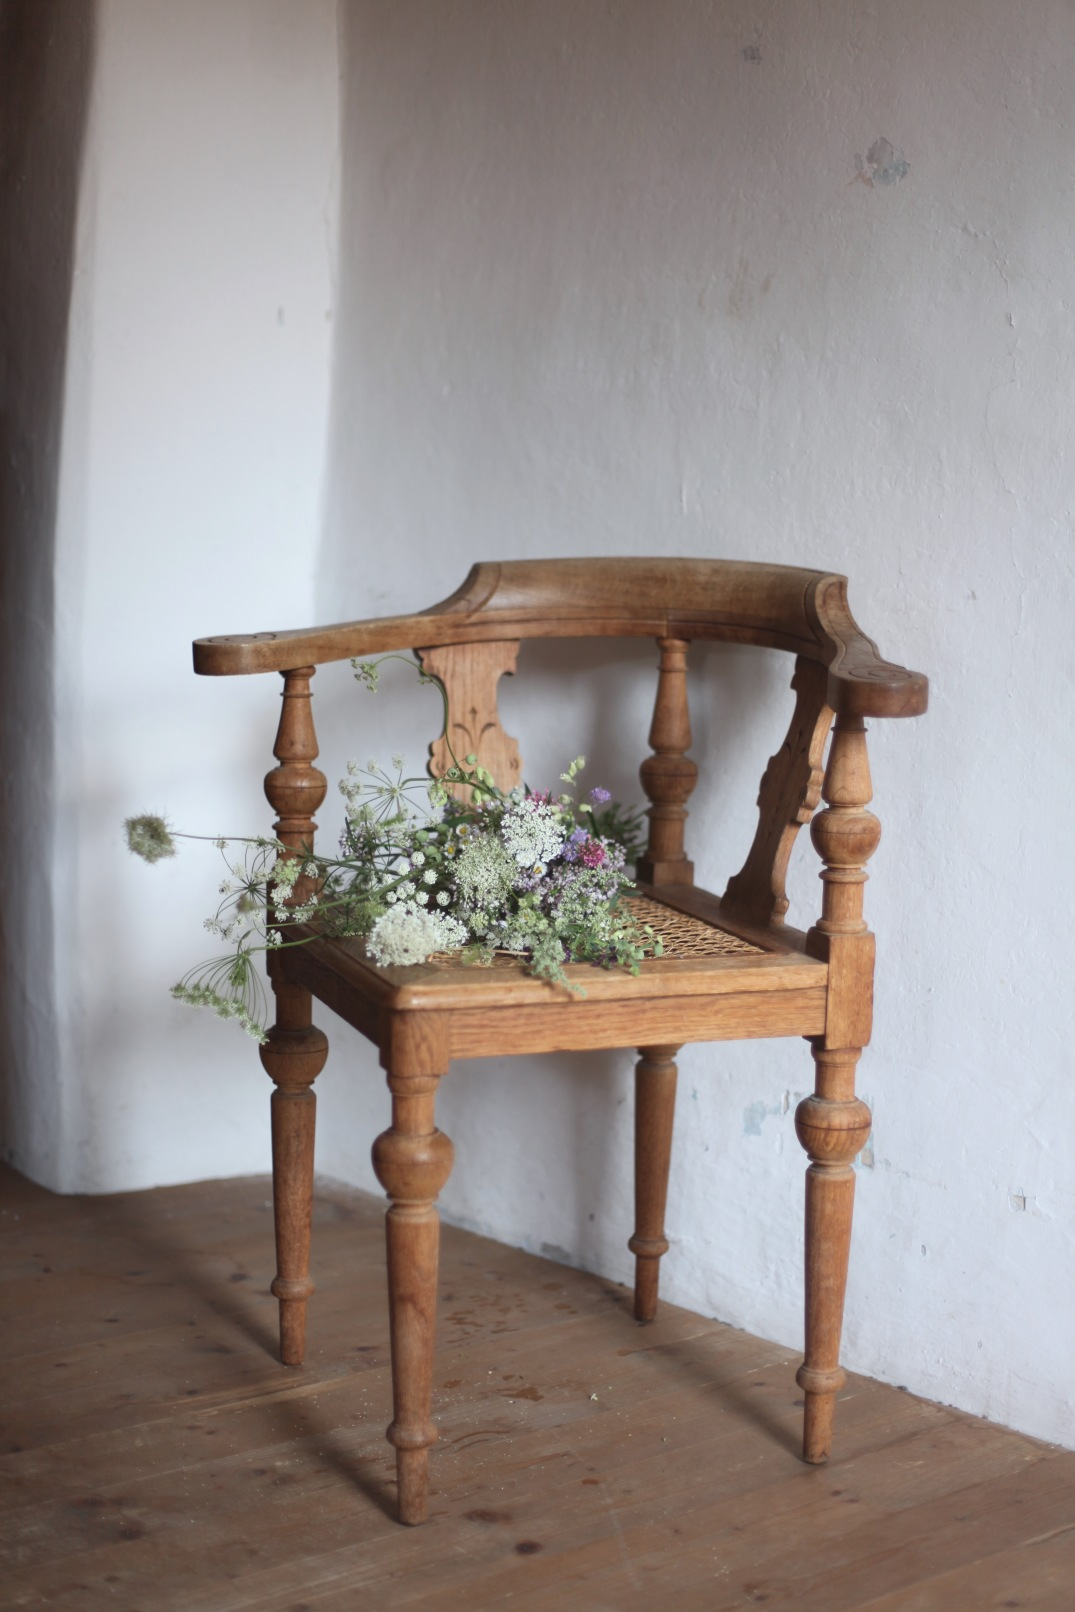 old chair and wild flower arrangement